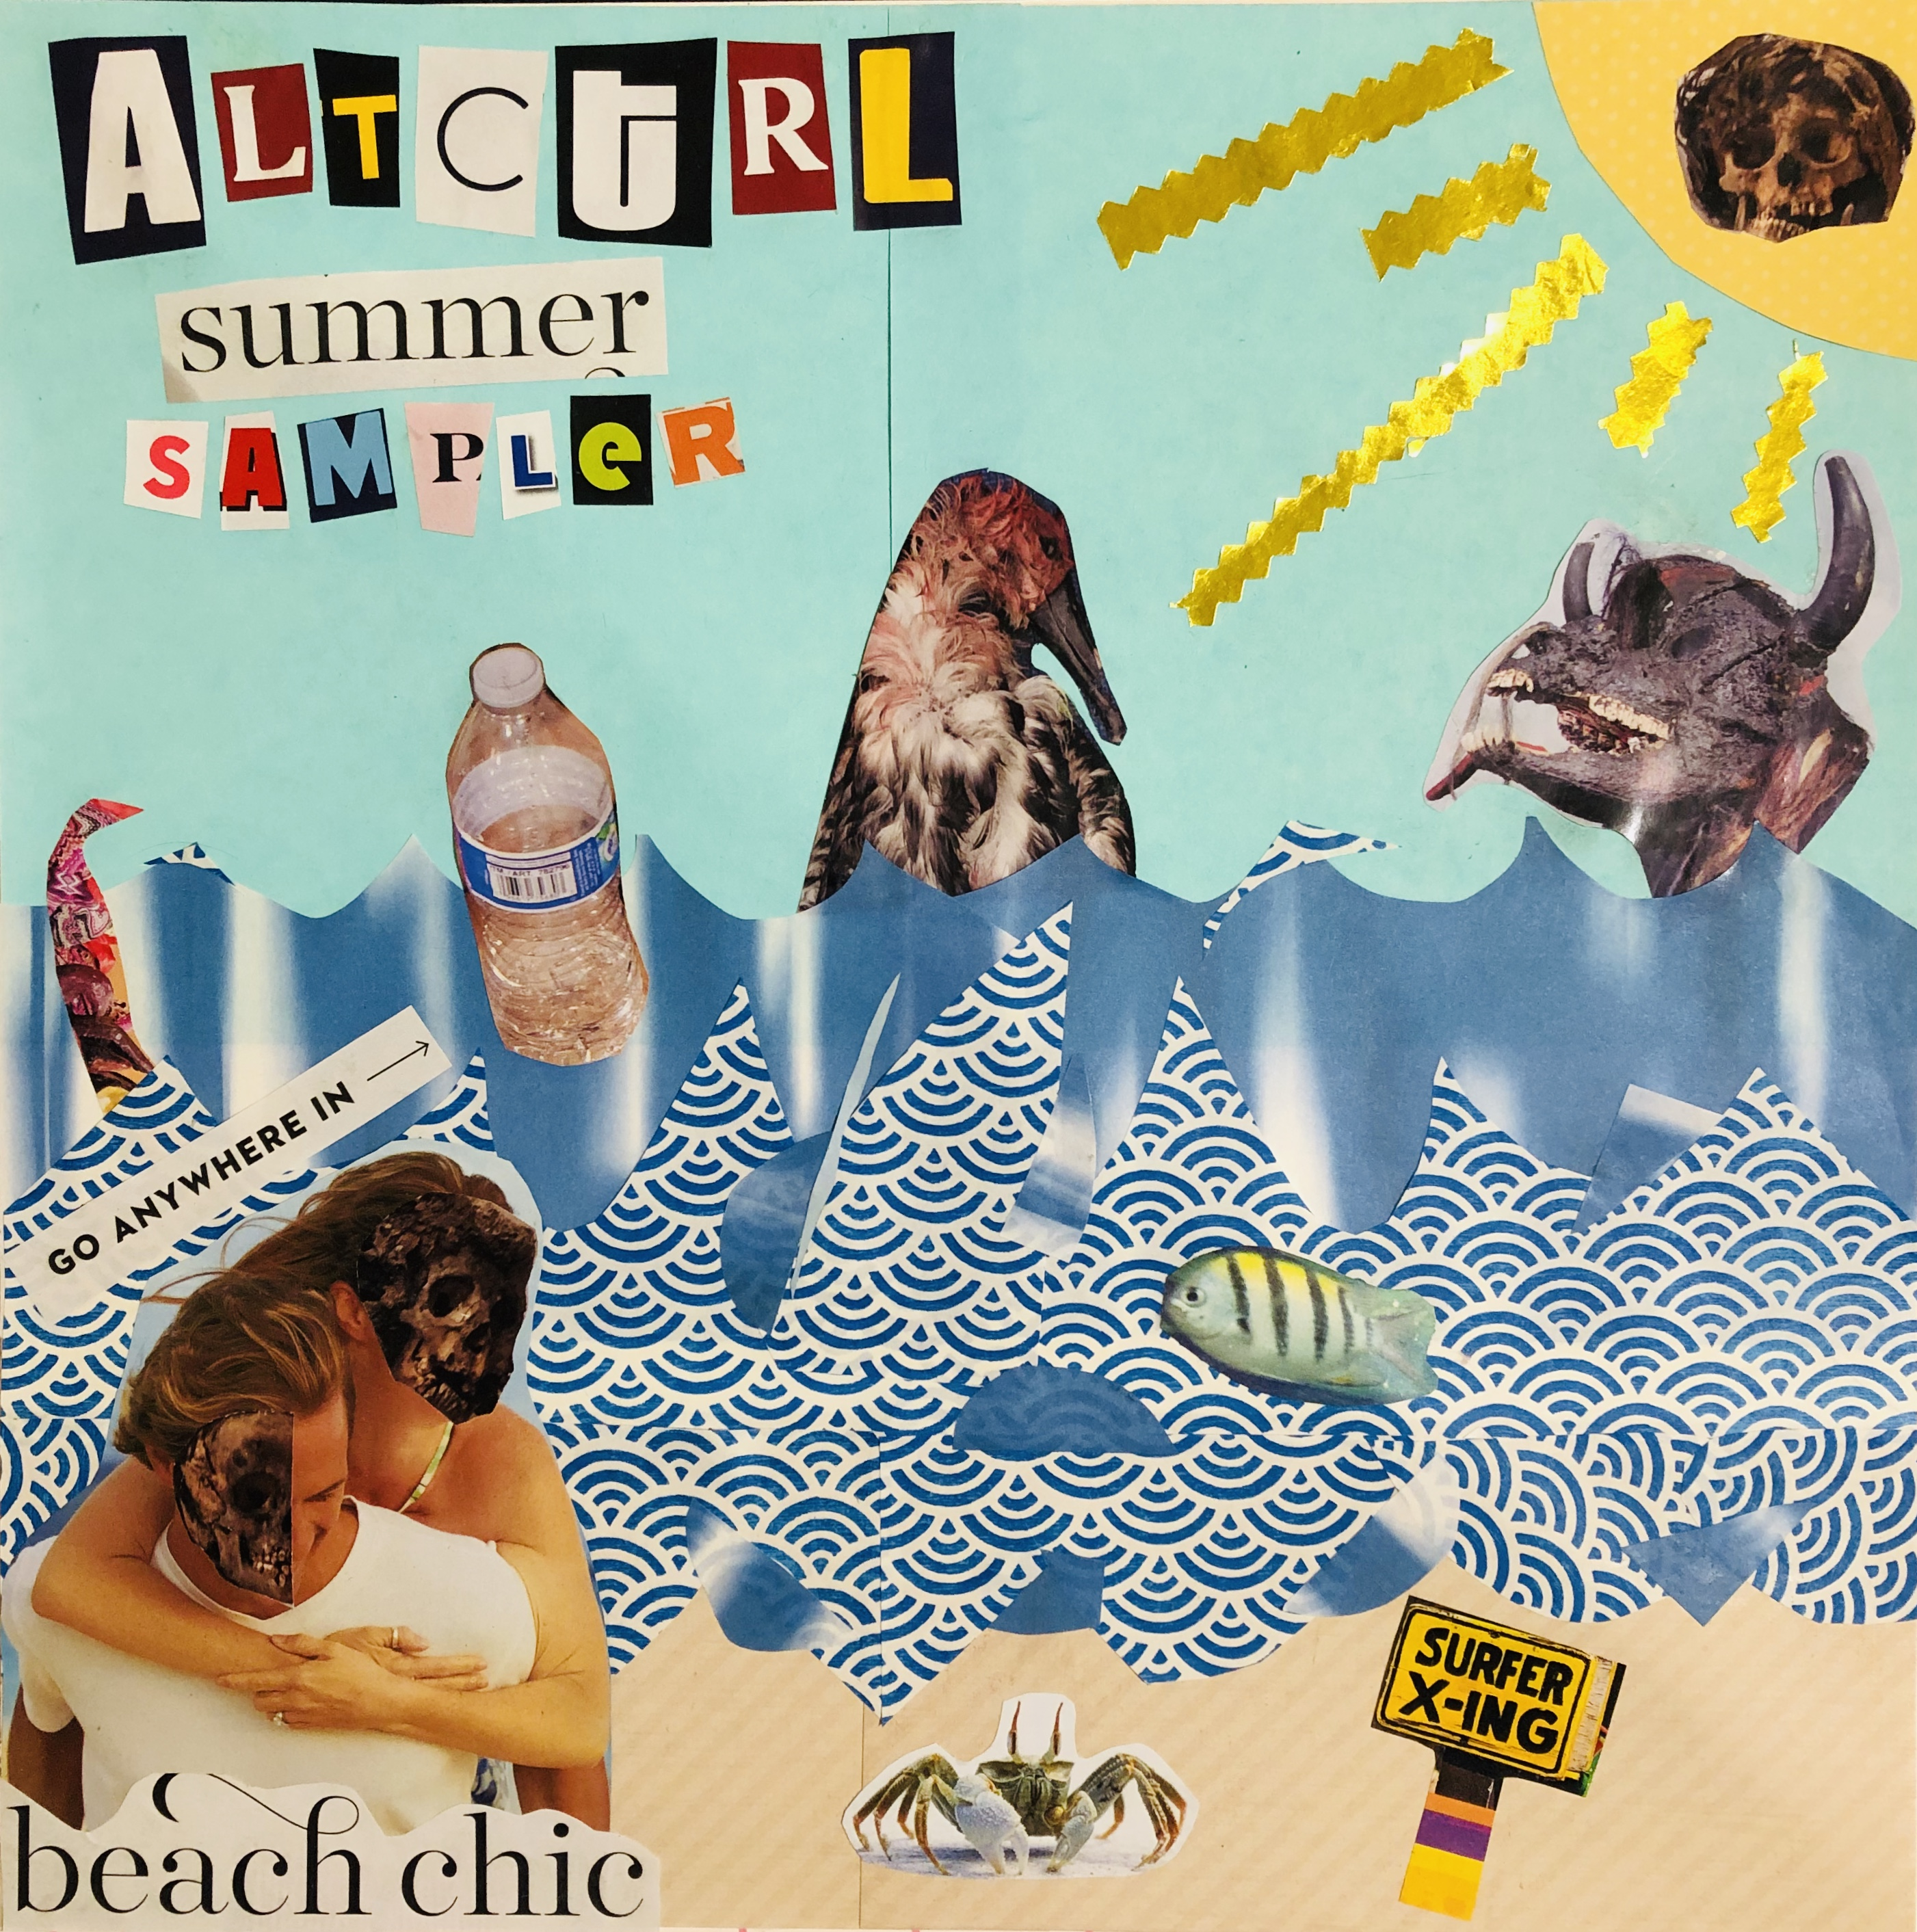 AltCtrl Summer Sampler